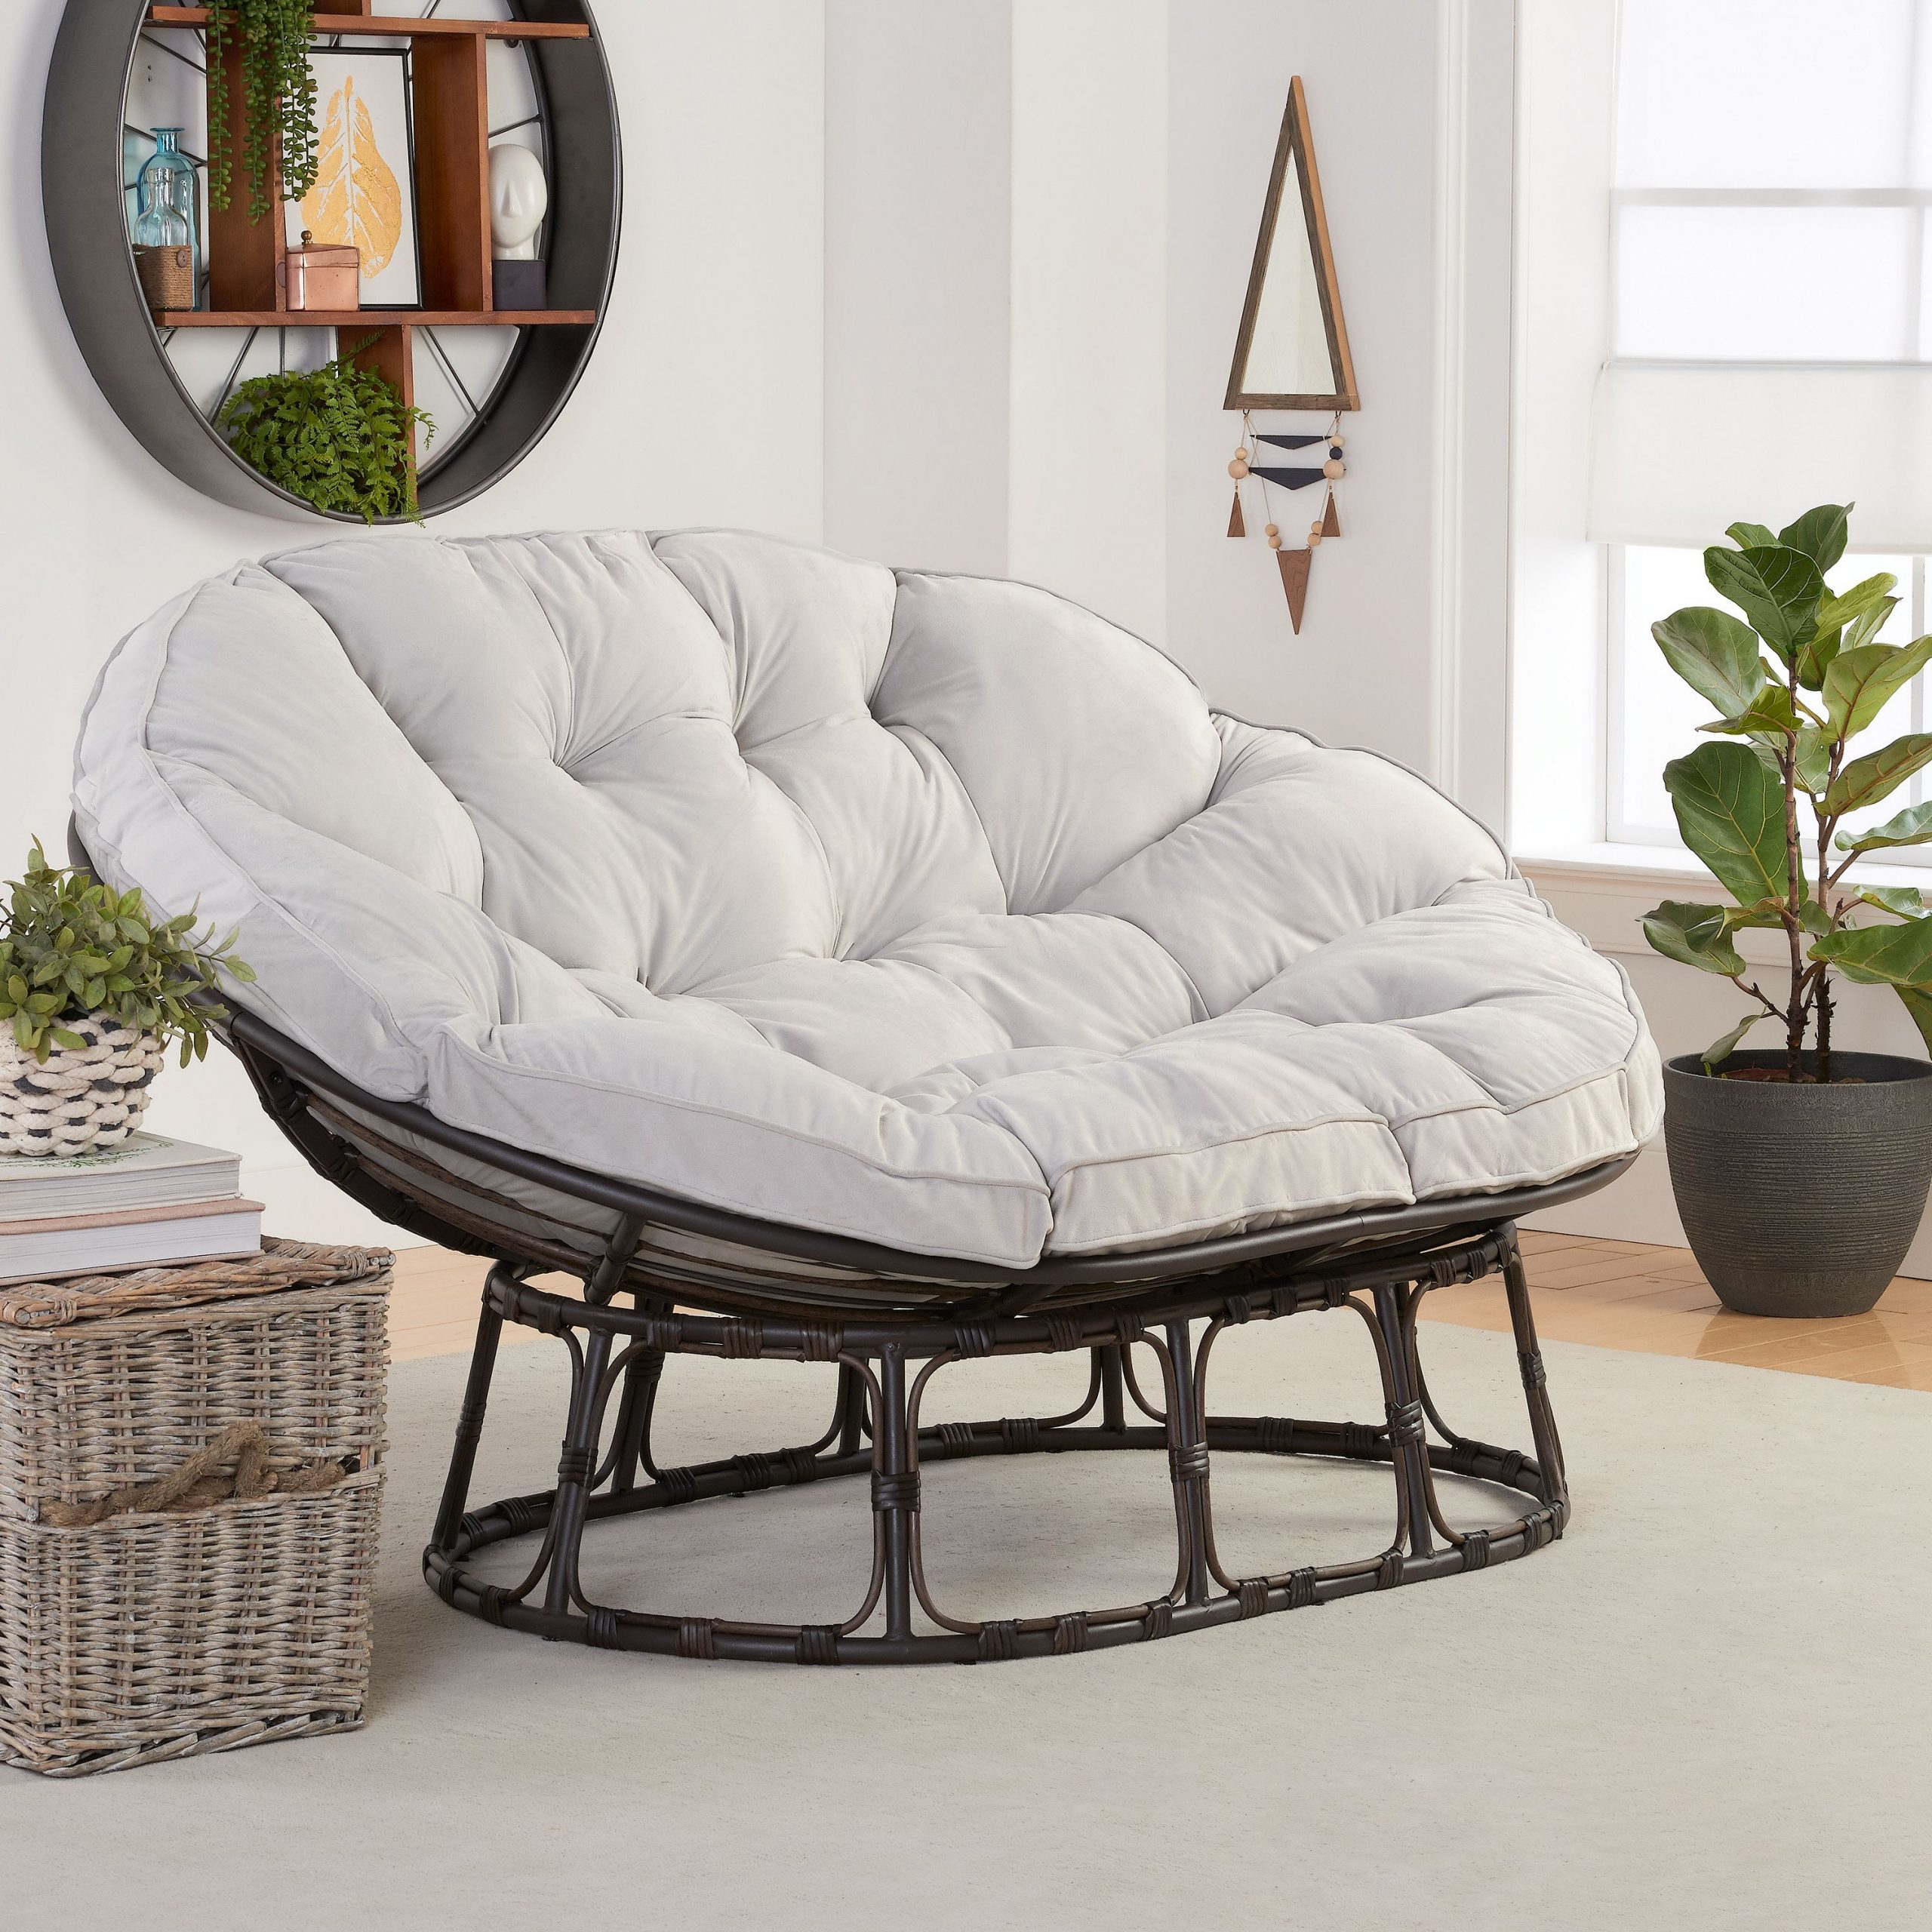 Current Decker Papasan Chairs Intended For Better Homes & Gardens Papasan Bench With Cushion, Pumice Gray – Walmart (View 11 of 20)